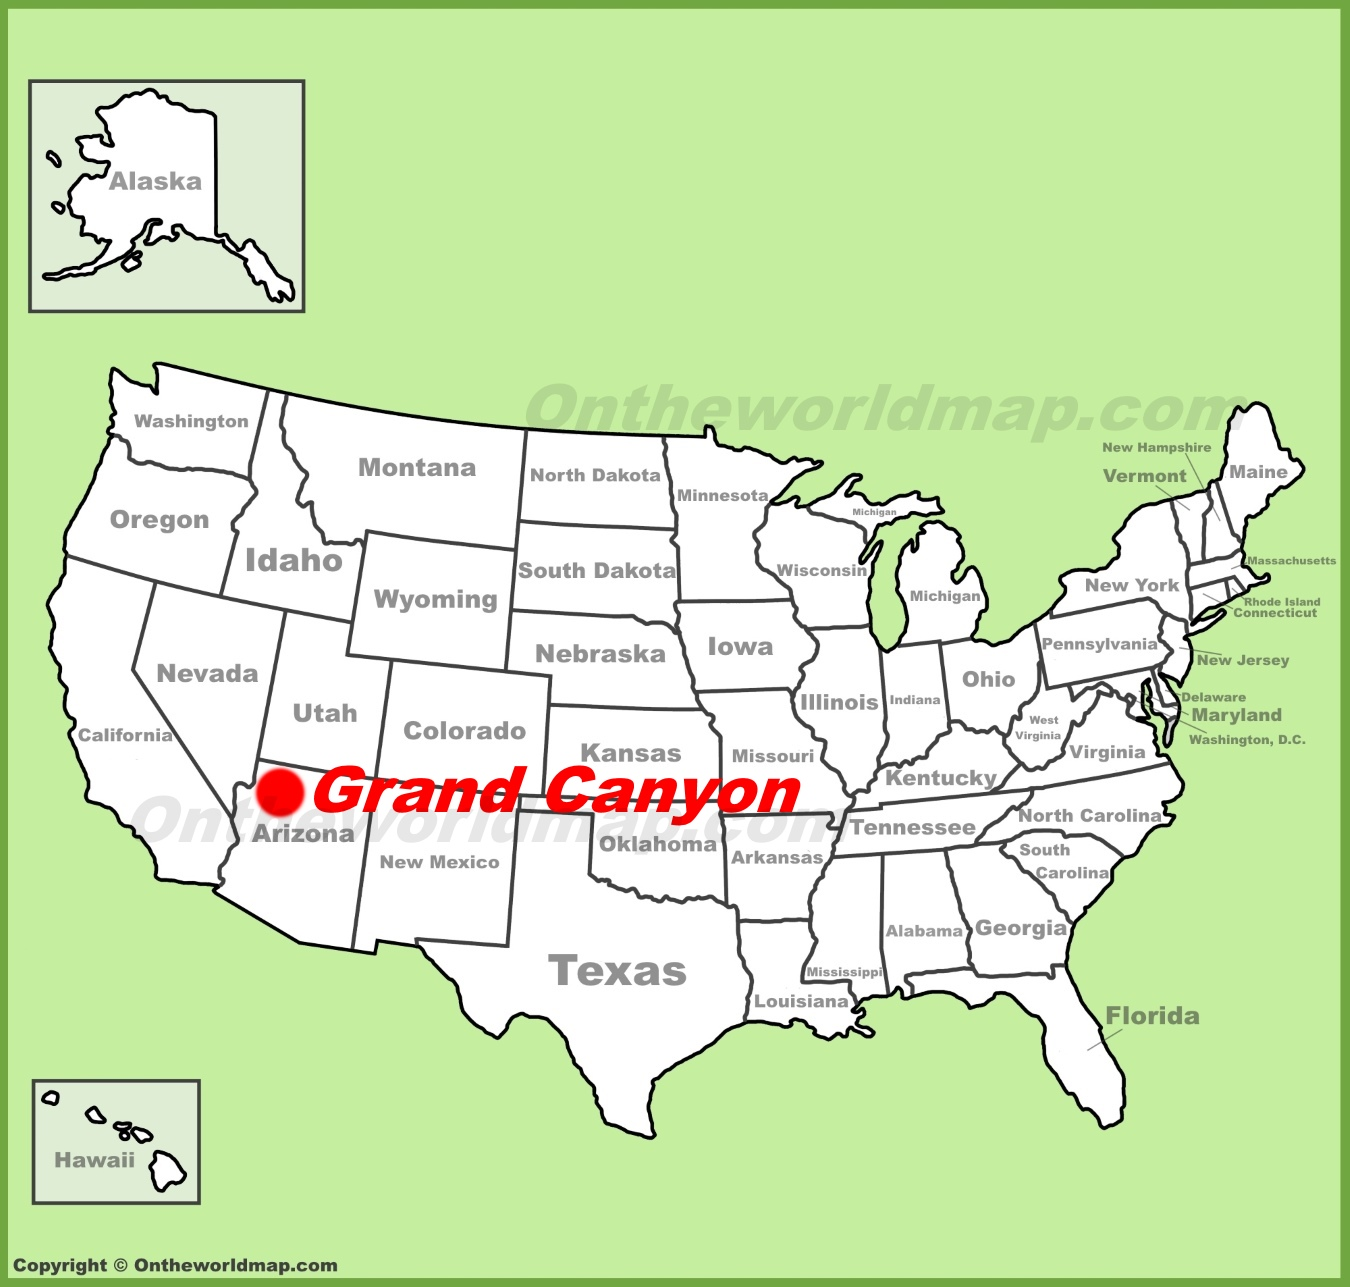 Grand Canyon Maps | USA | Maps of Grand Canyon National Park